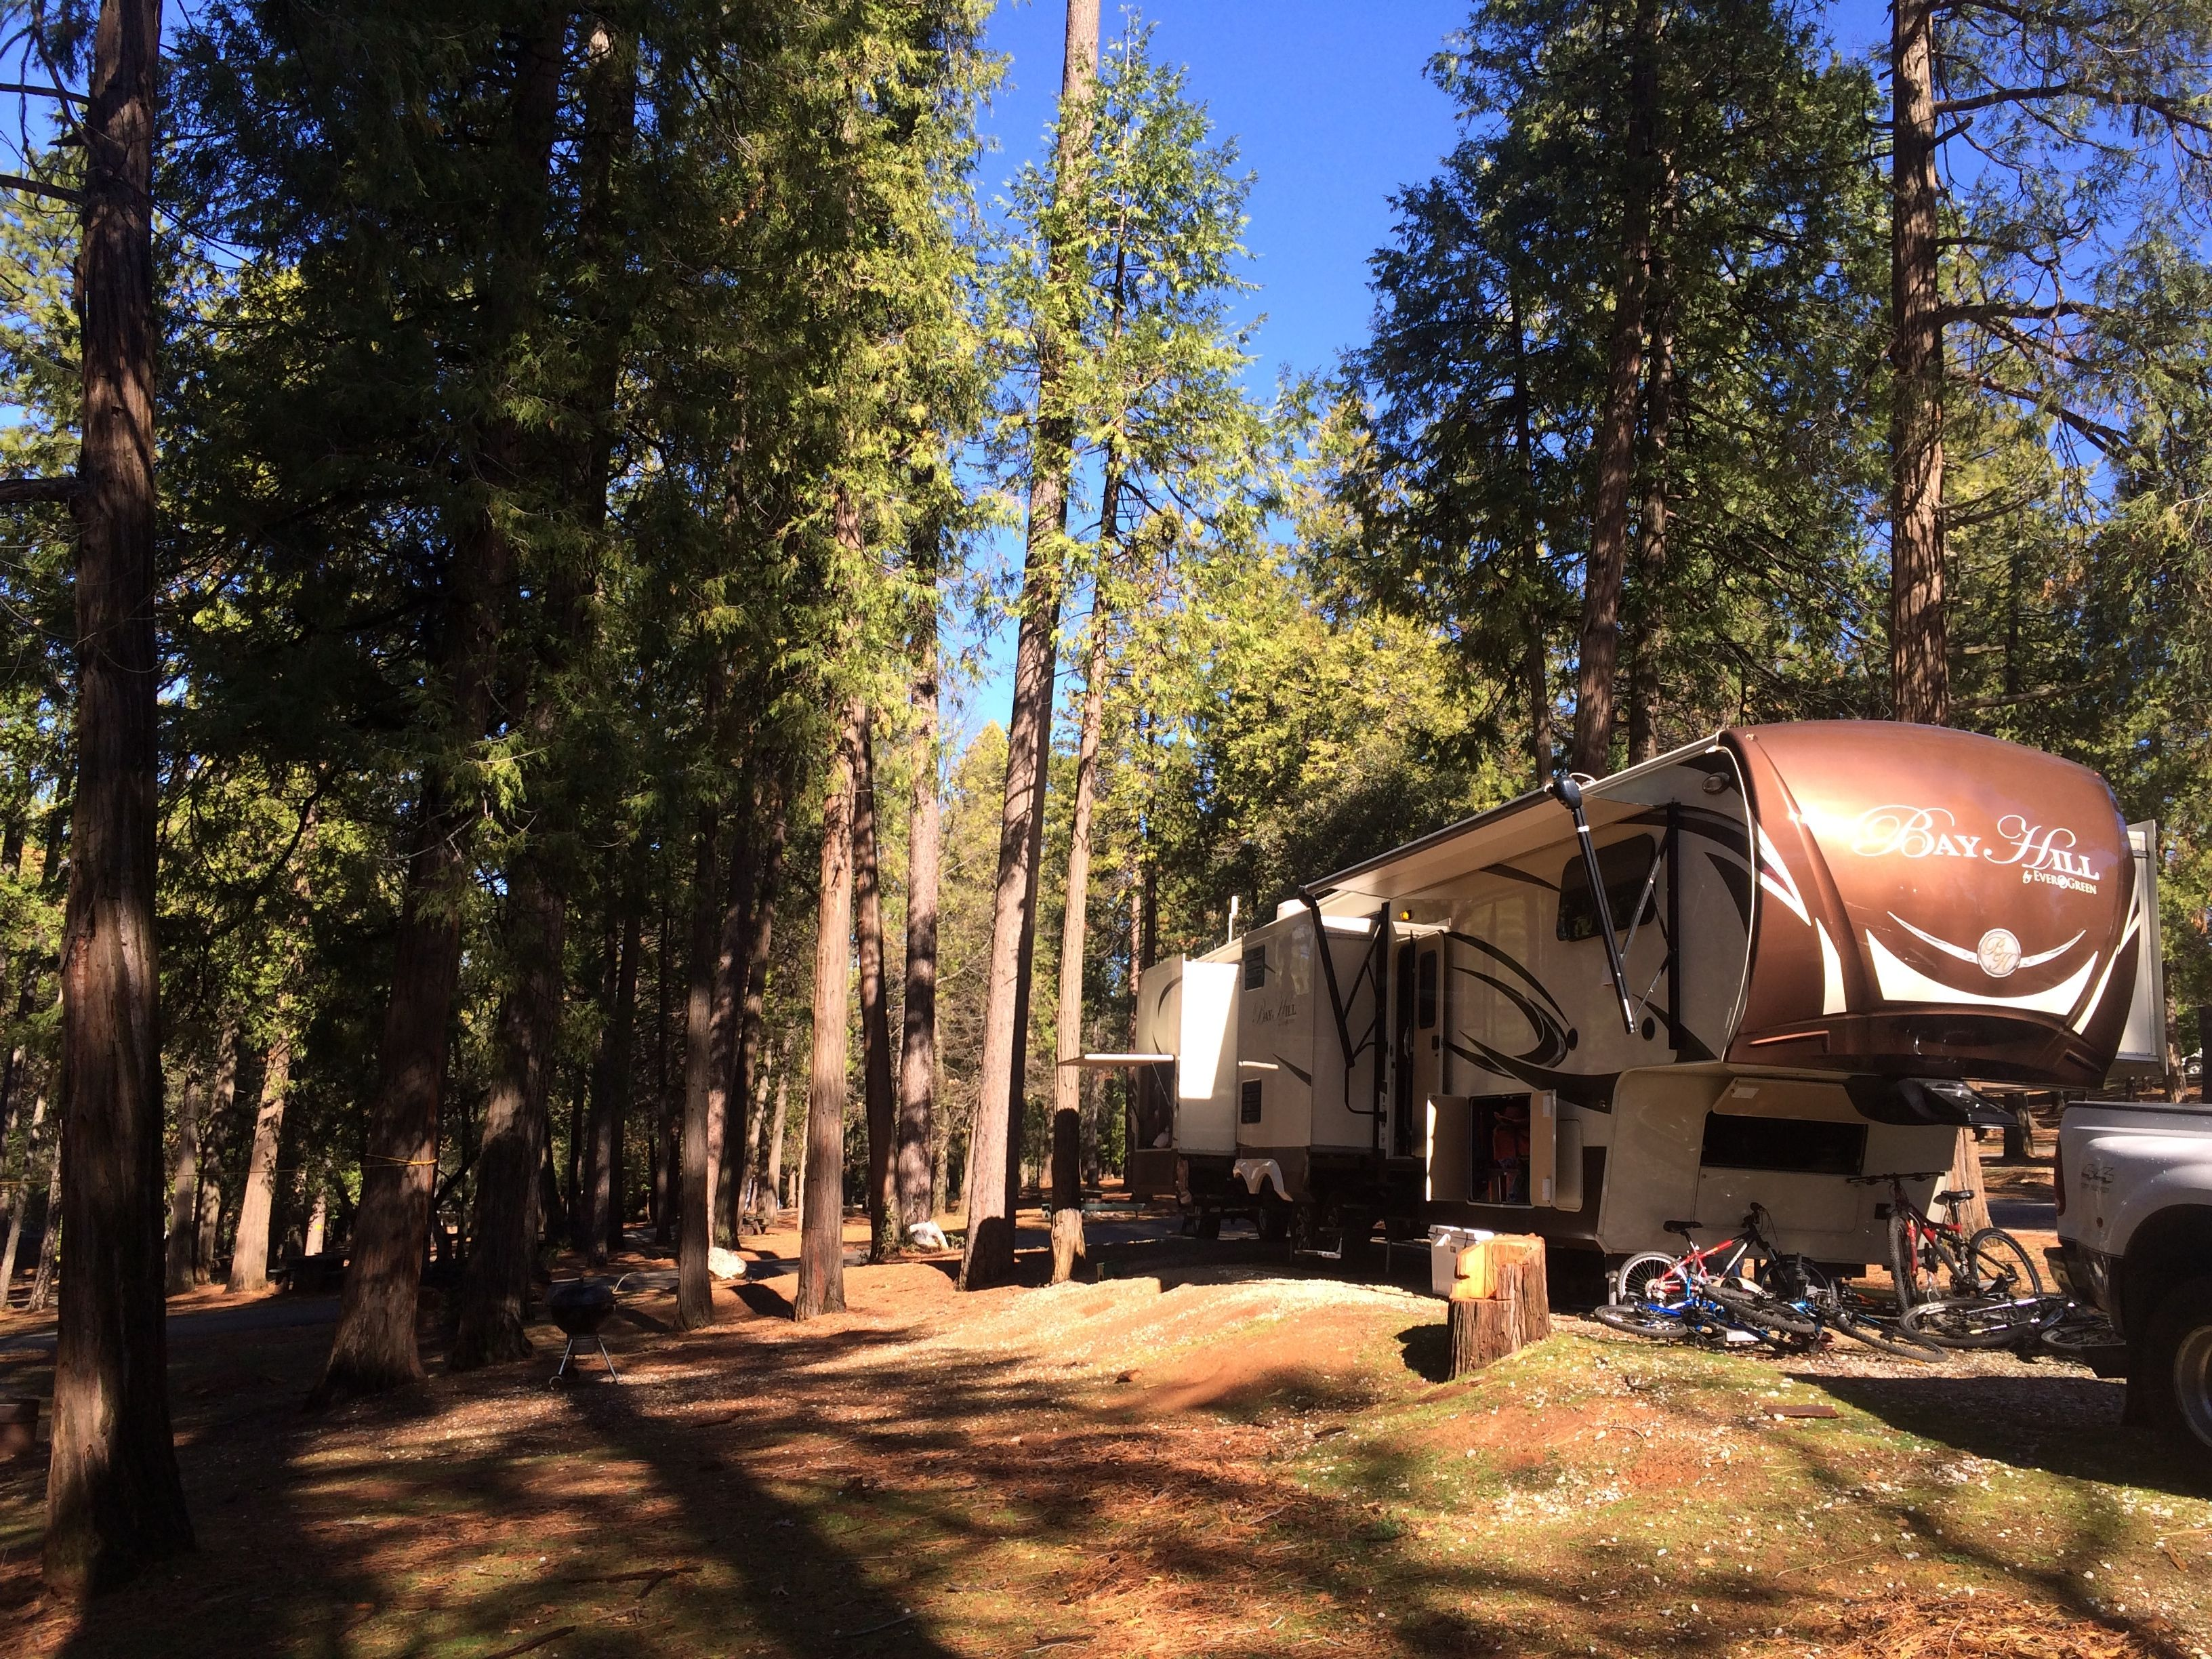 Our Campsite in Pine Grove, CA